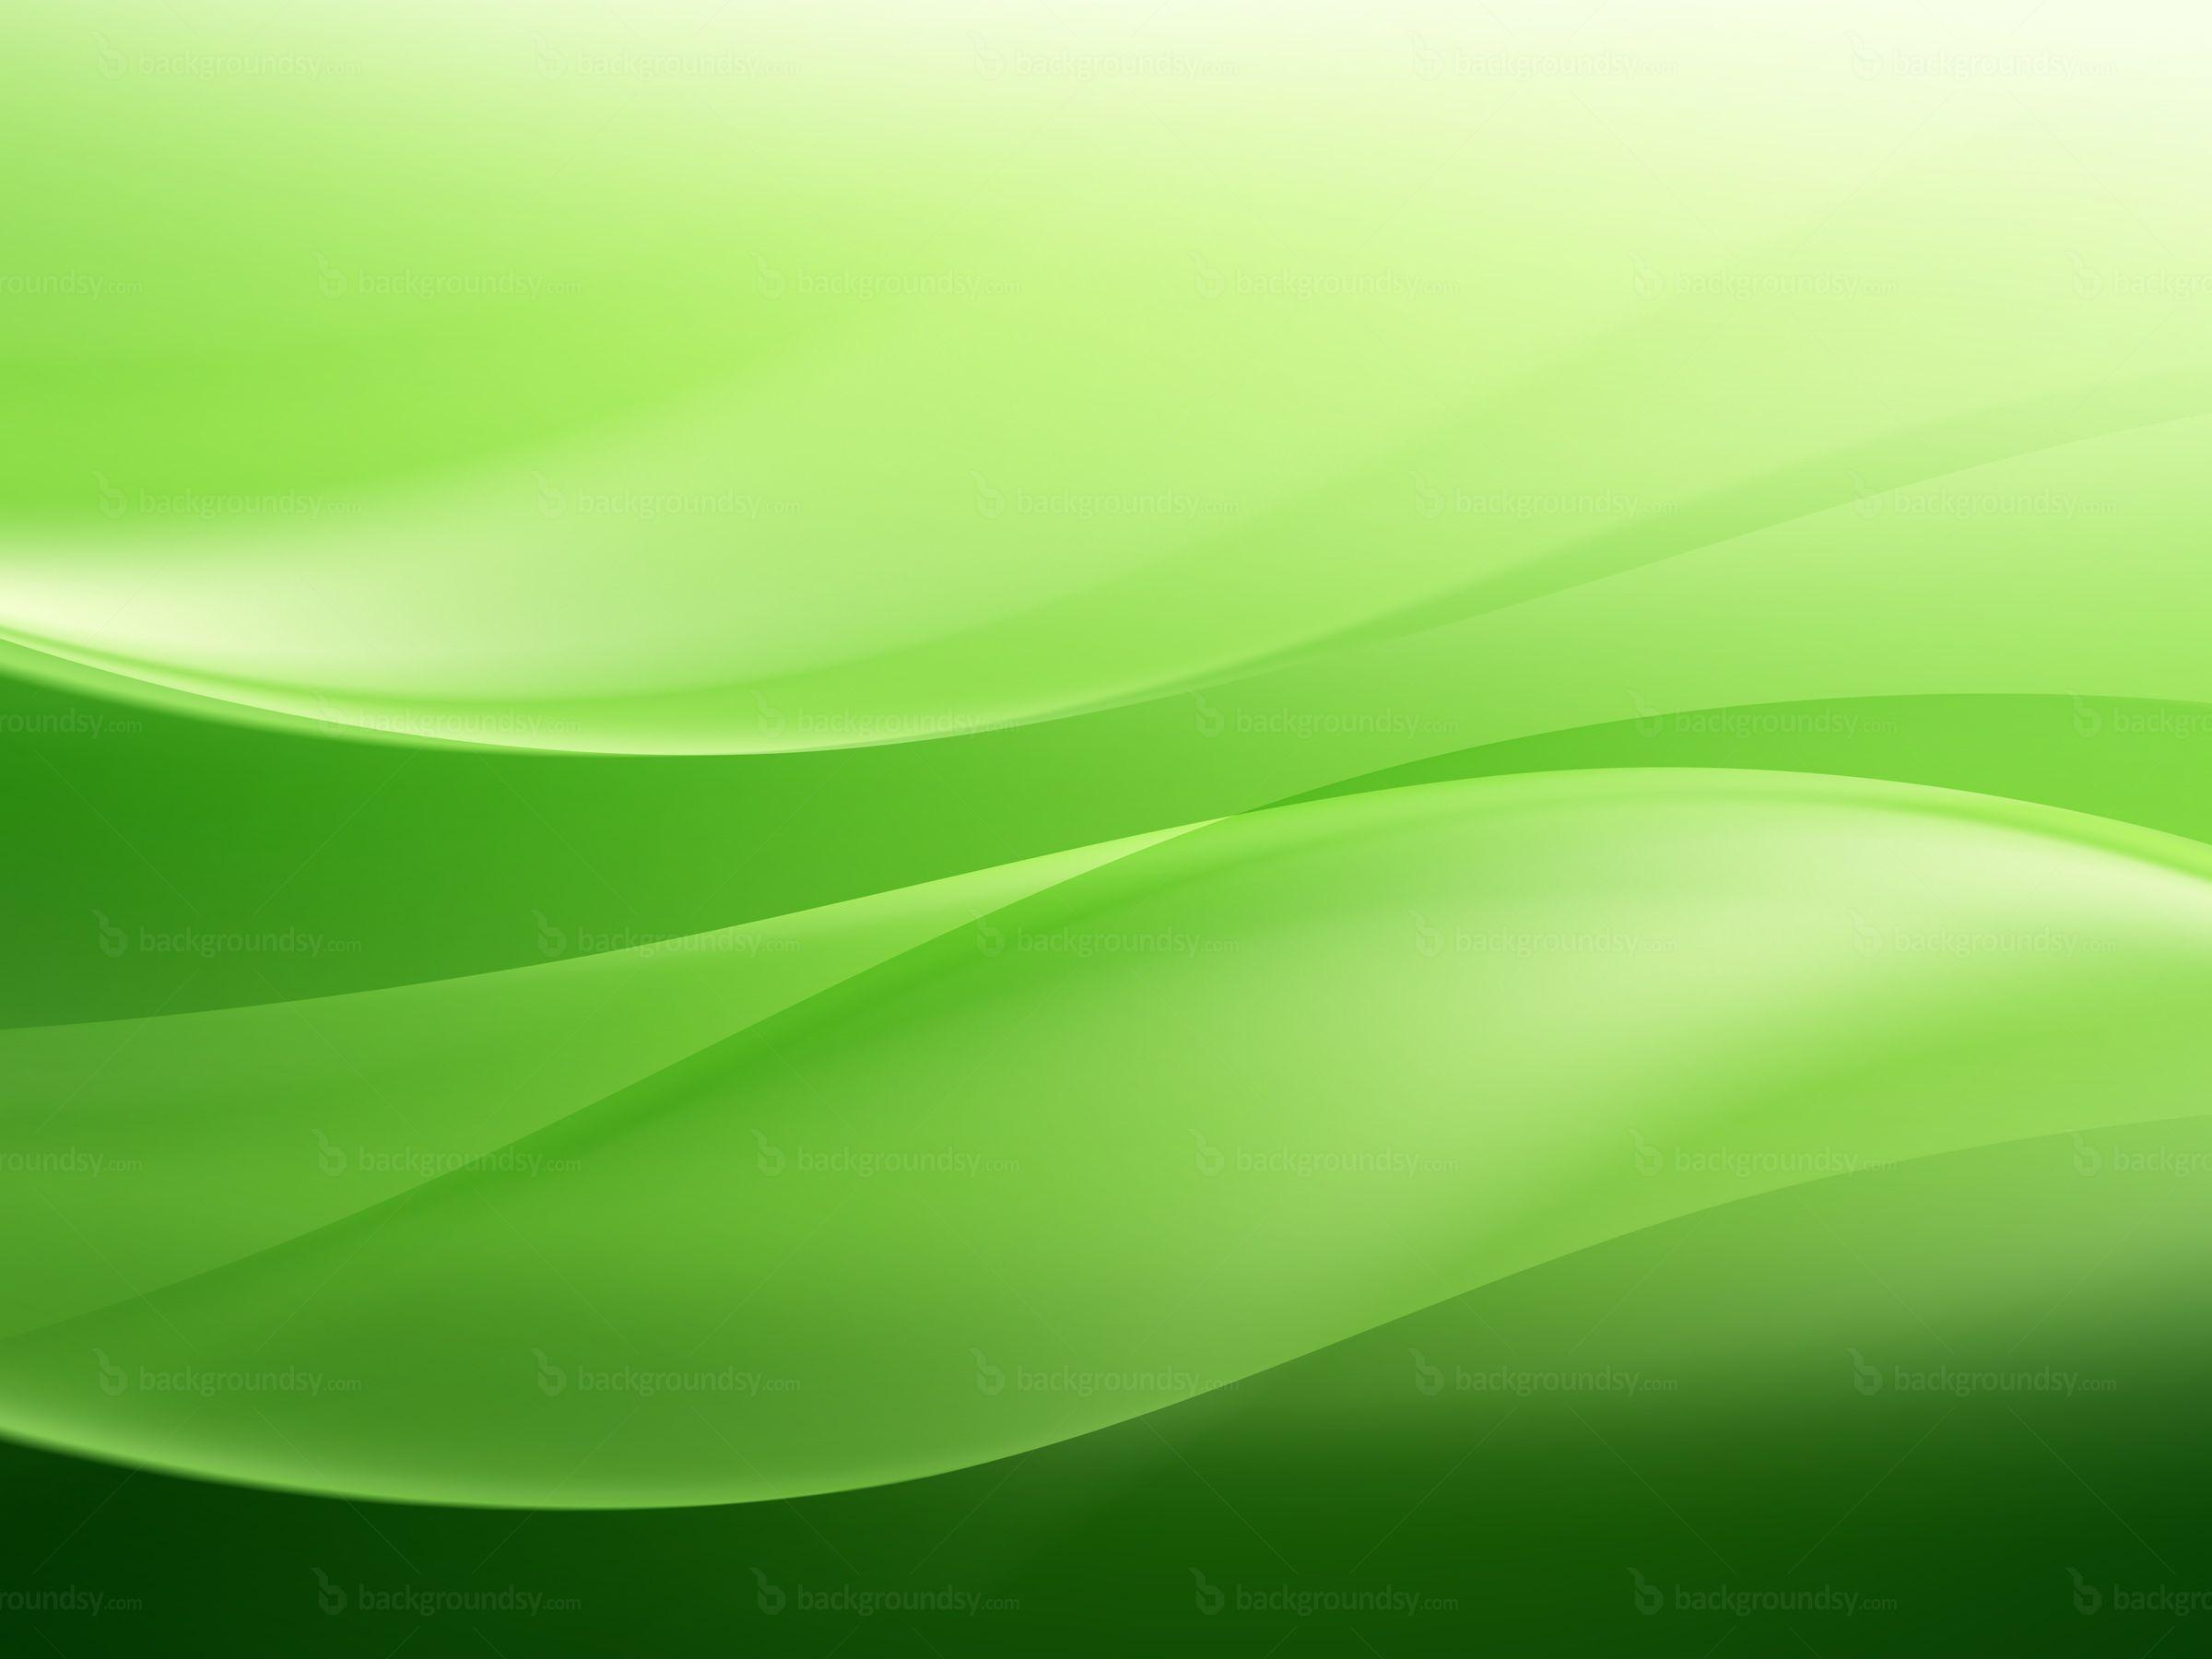 Green Backgrounds 14 19798 HD Wallpapers